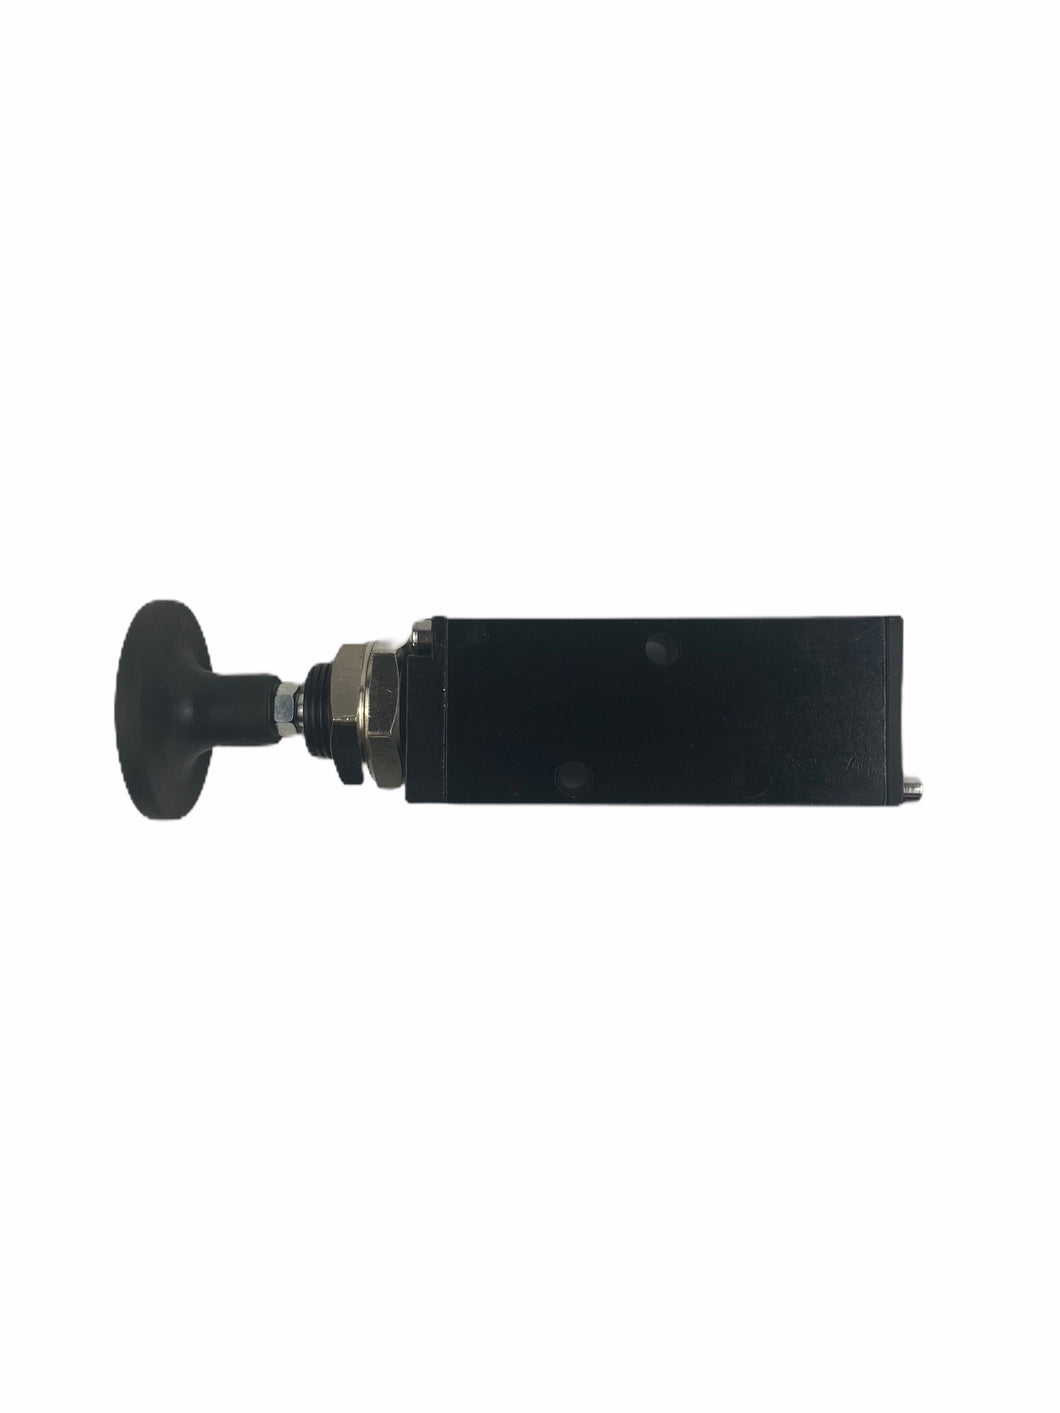 Push Pull Valve⎪Replaces Velvac 320175